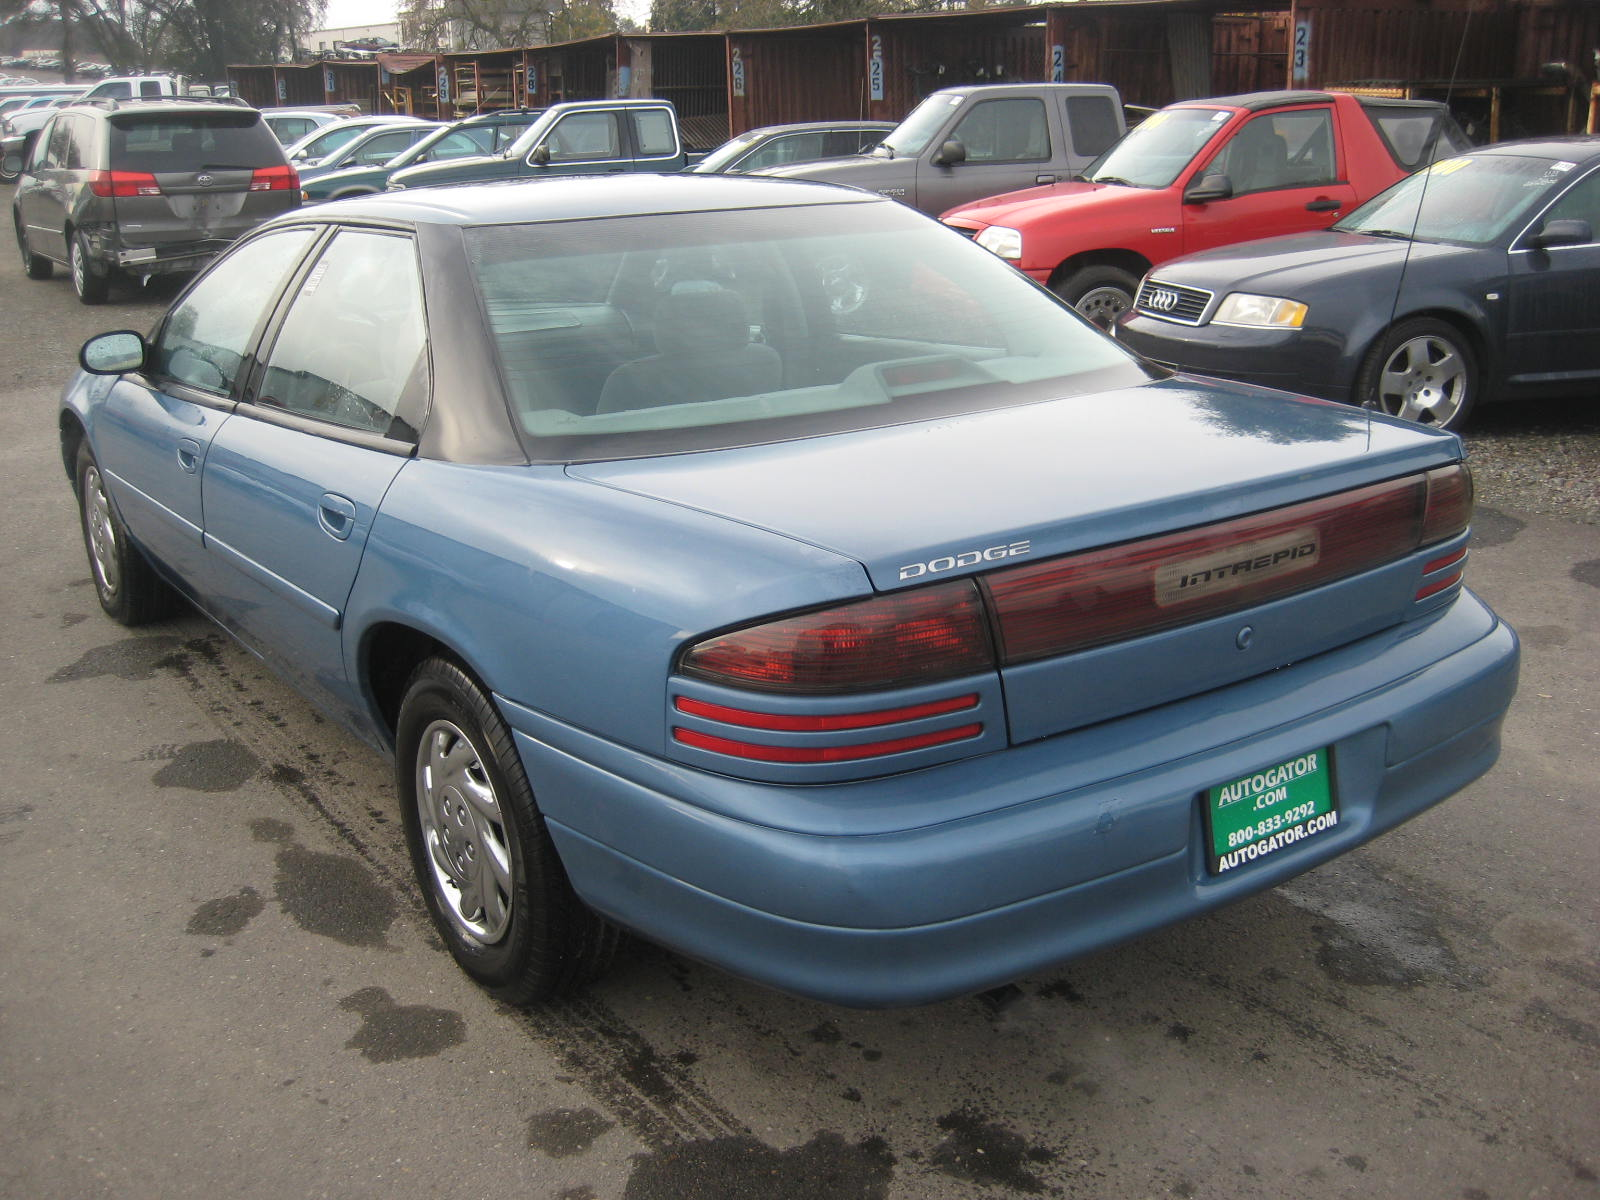 1995 dodge intrepid information and photos zombiedrive. Black Bedroom Furniture Sets. Home Design Ideas